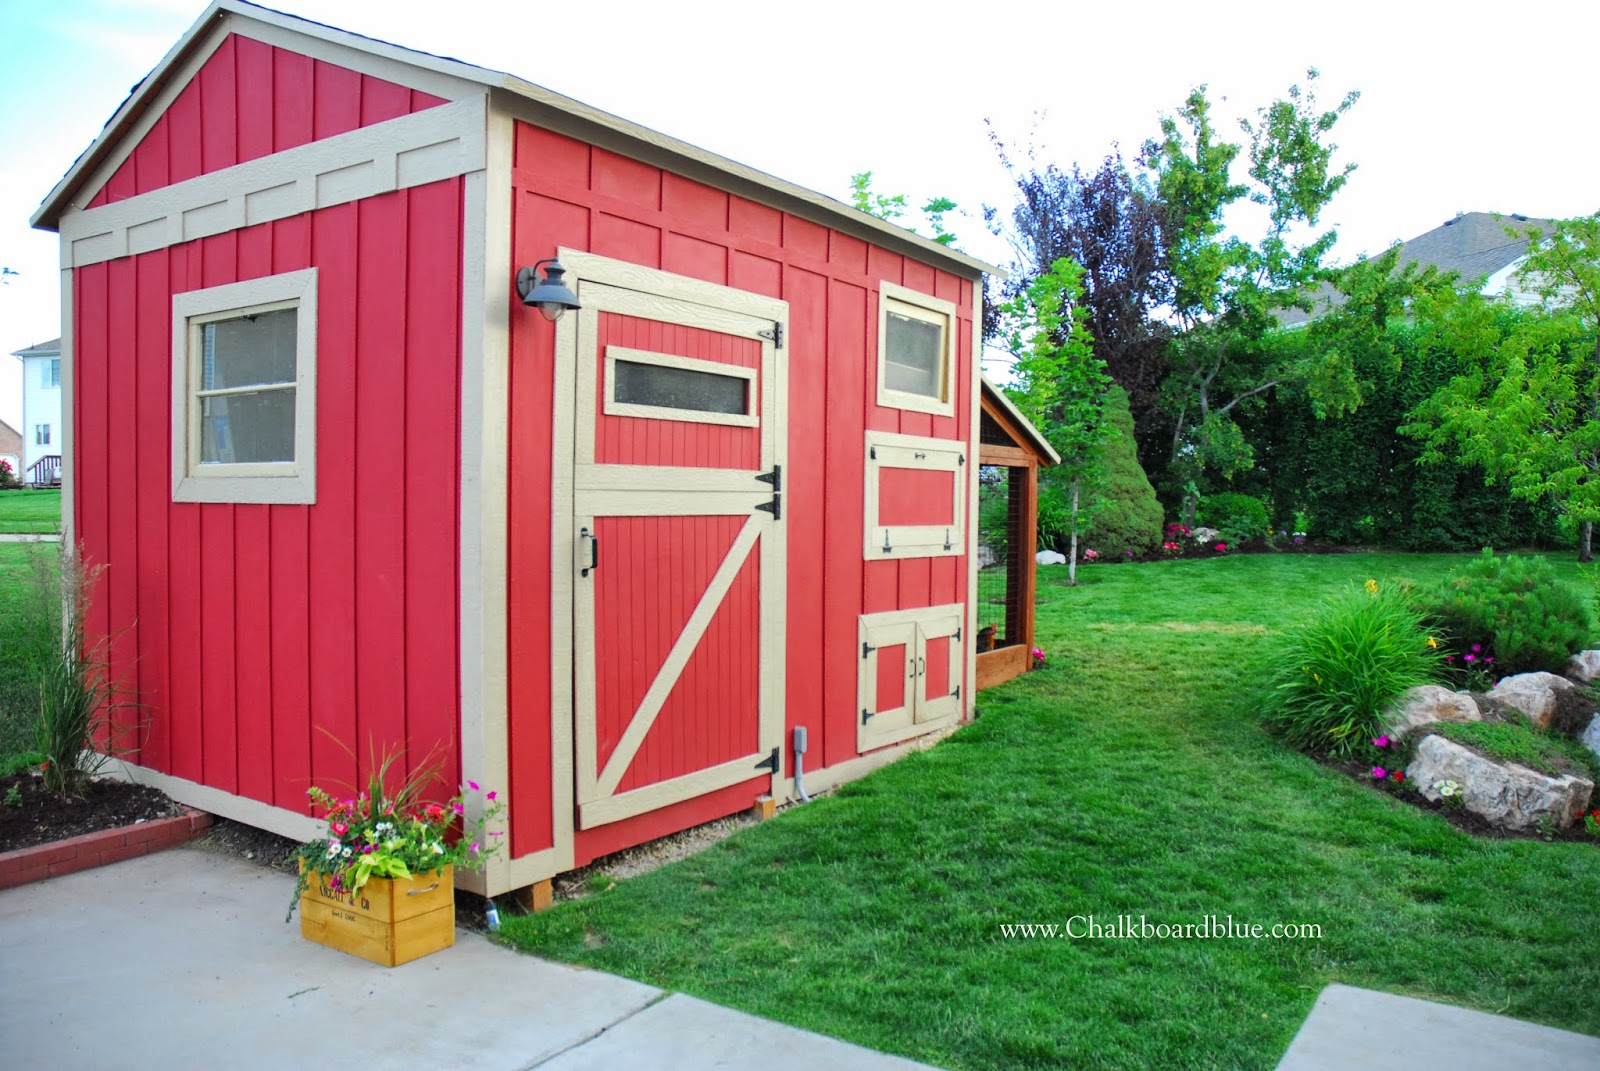 How to Build a Chicken Coop with